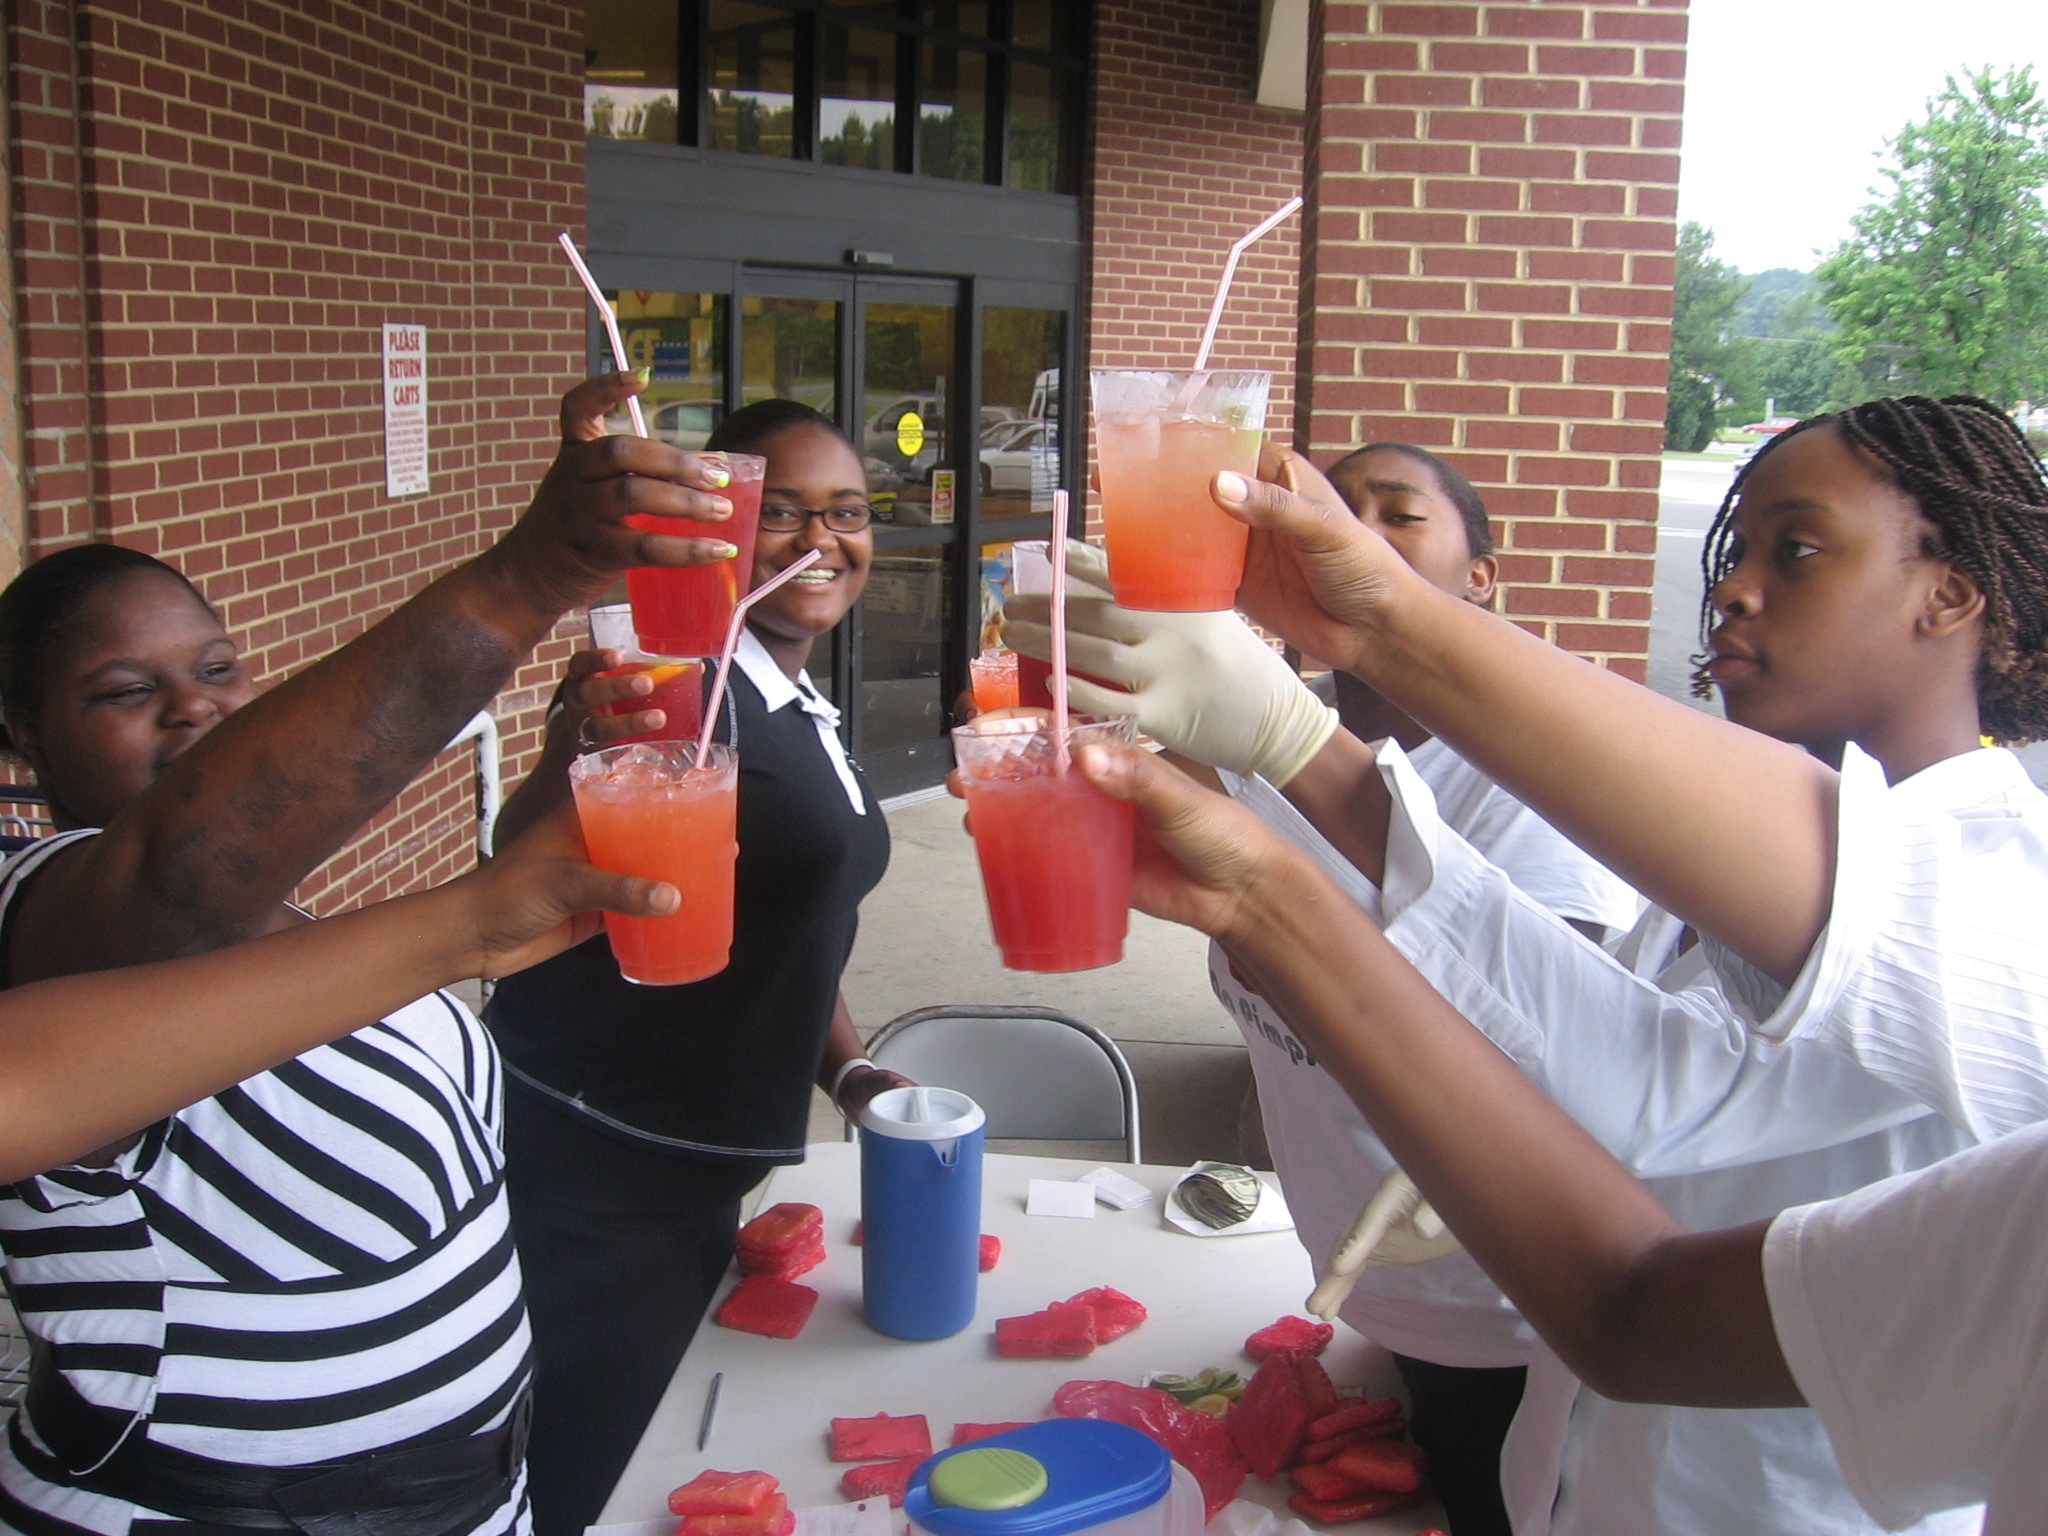 our young entrepreneurs cheering to a successful lemonade stand...how cool & refreshing!!!